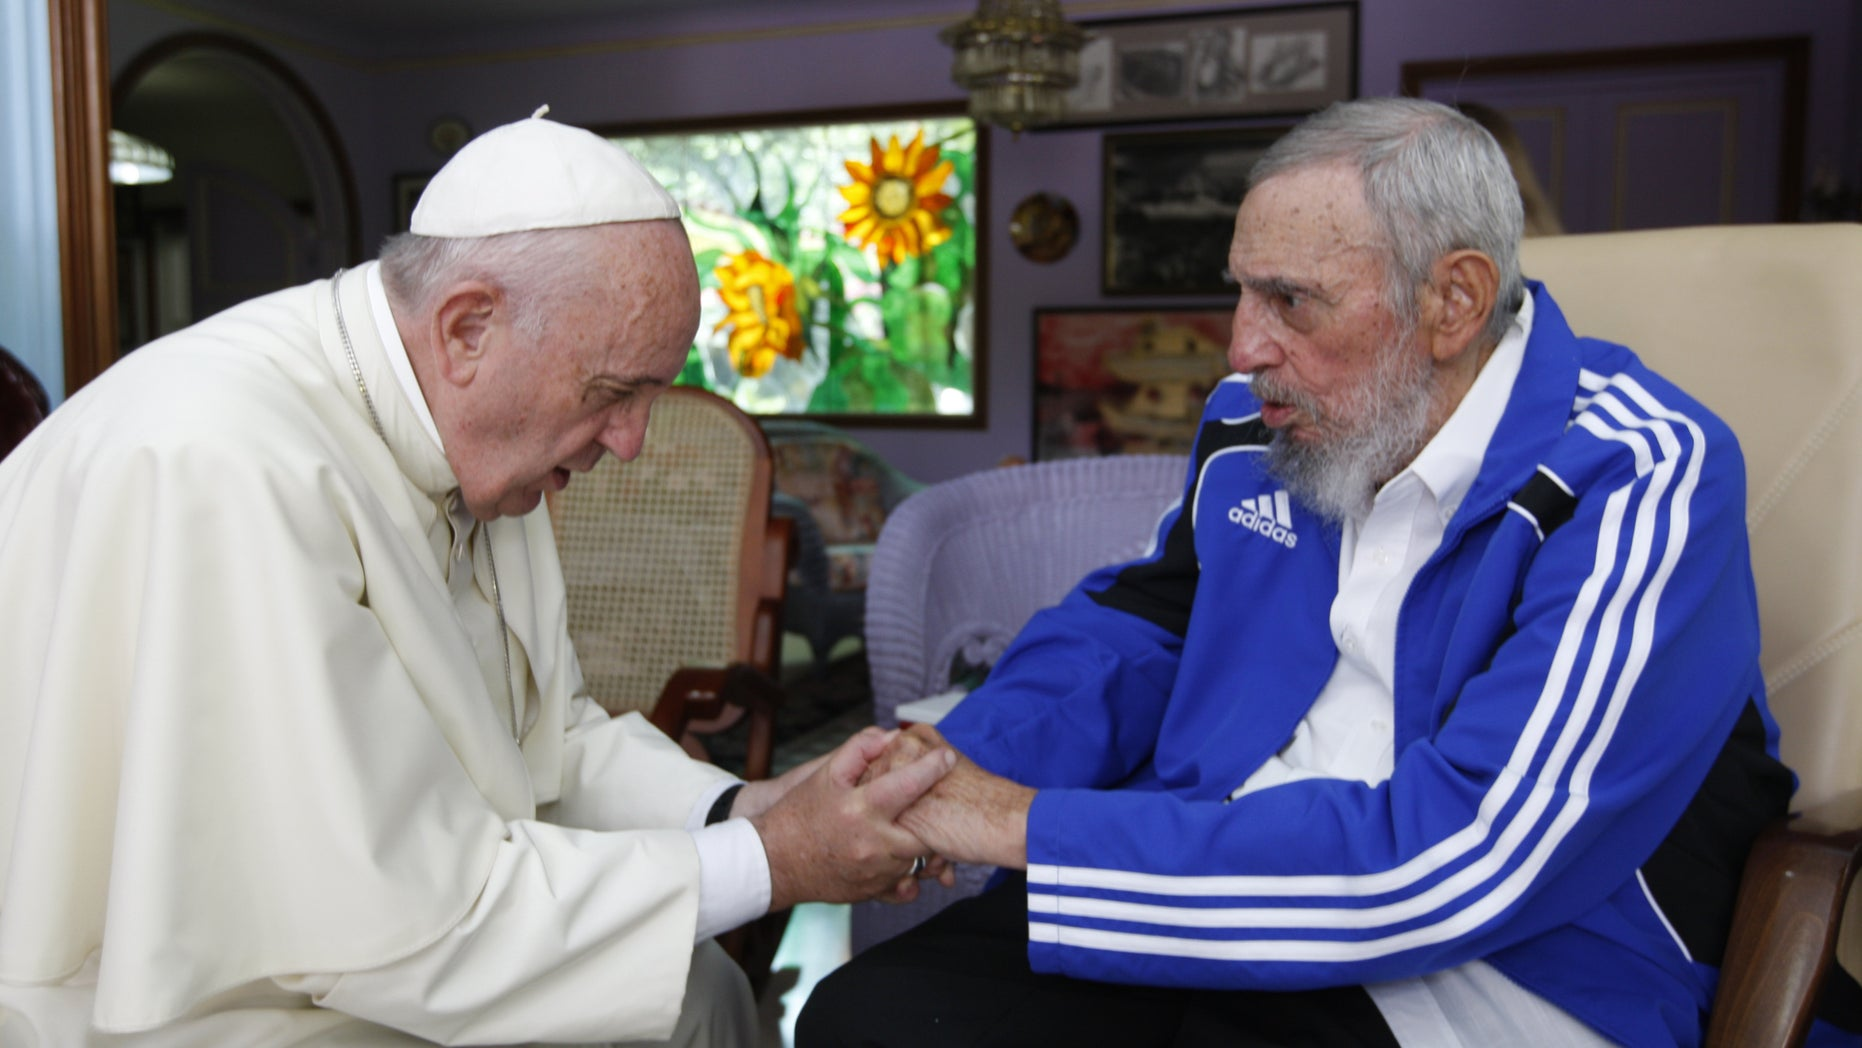 In this Sunday, Sept. 20, 2015 file photo, Pope Francis meets Fidel Castro in Havana, Cuba.